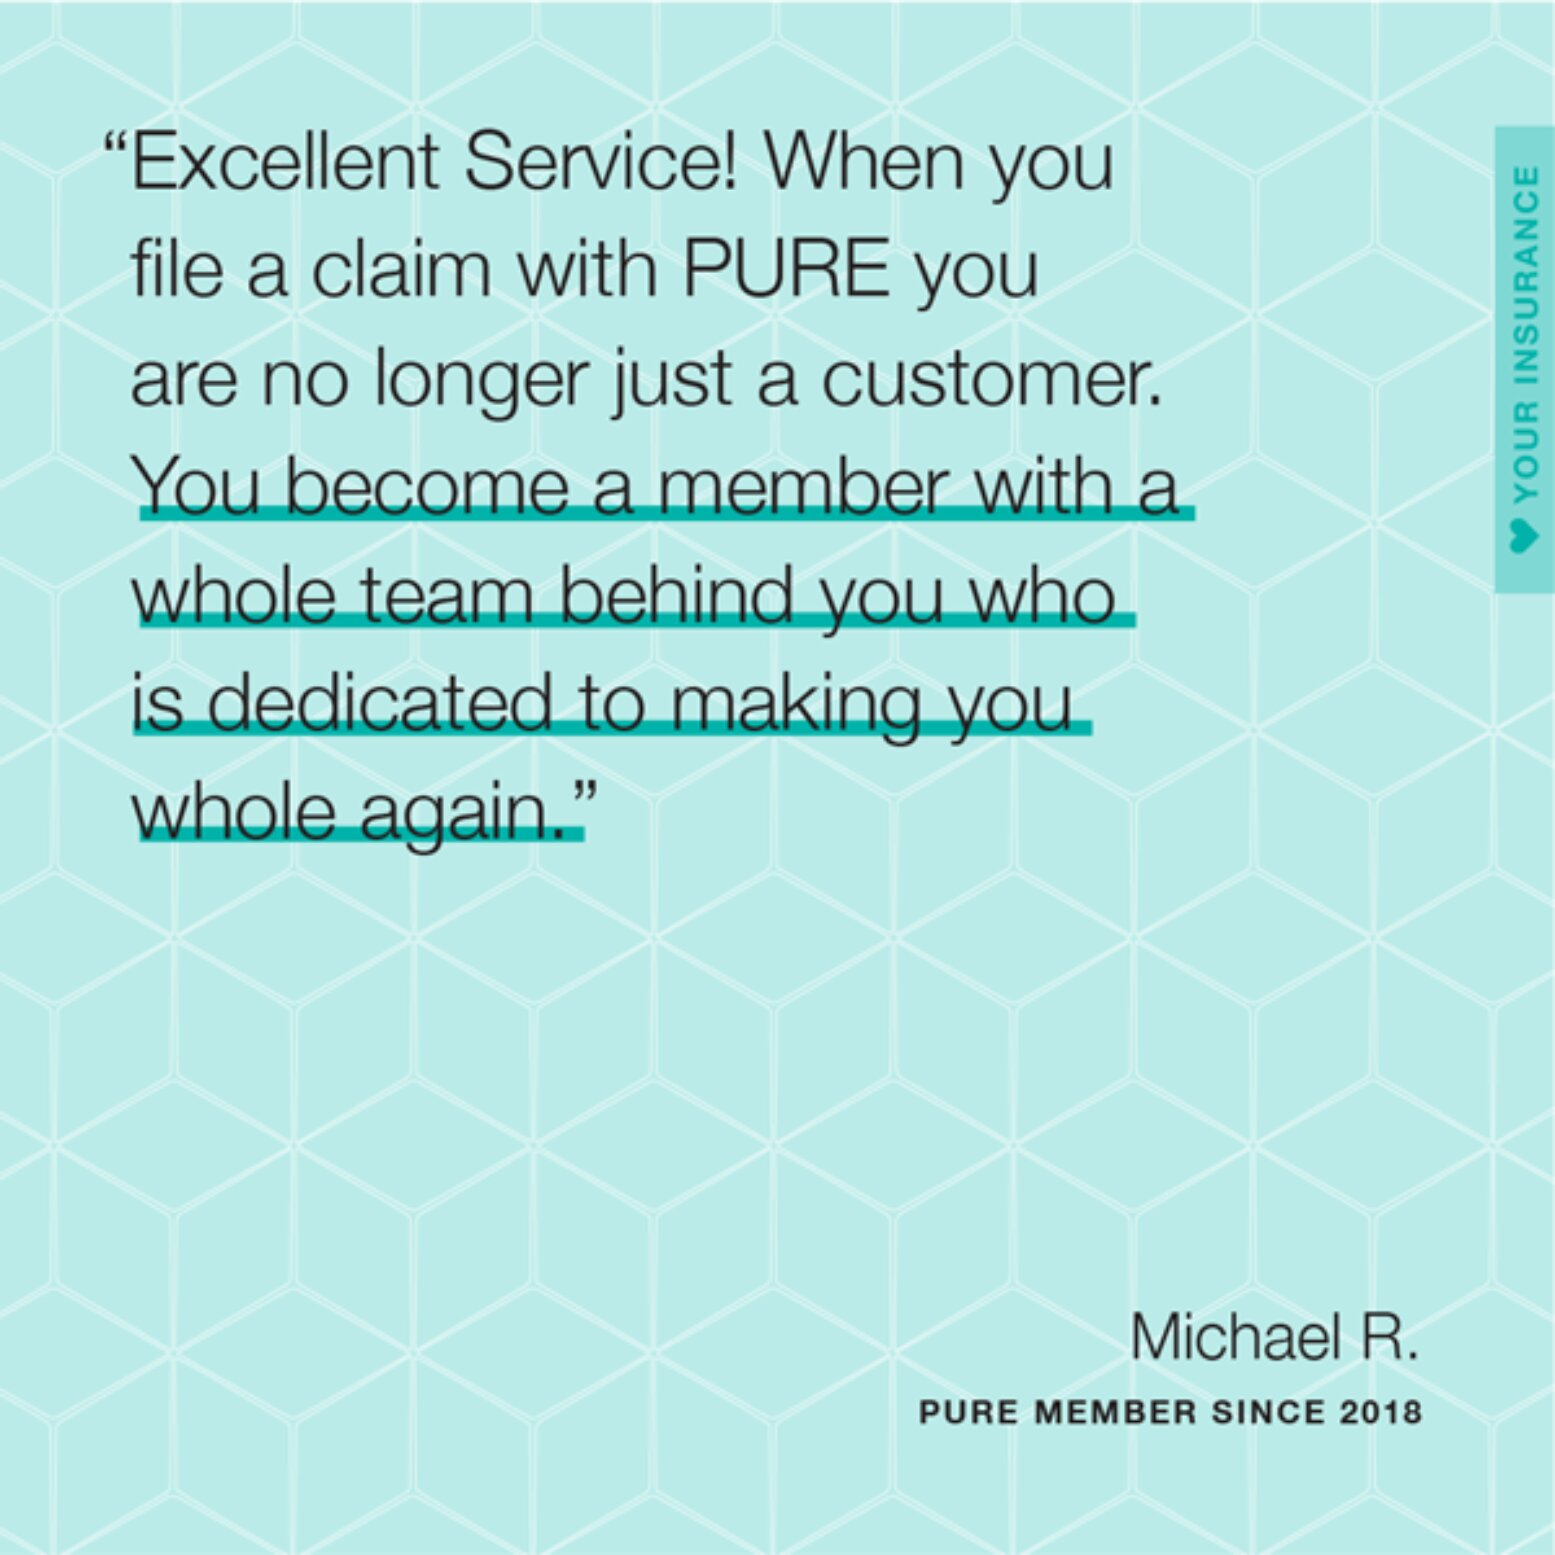 Michael R Quote Card